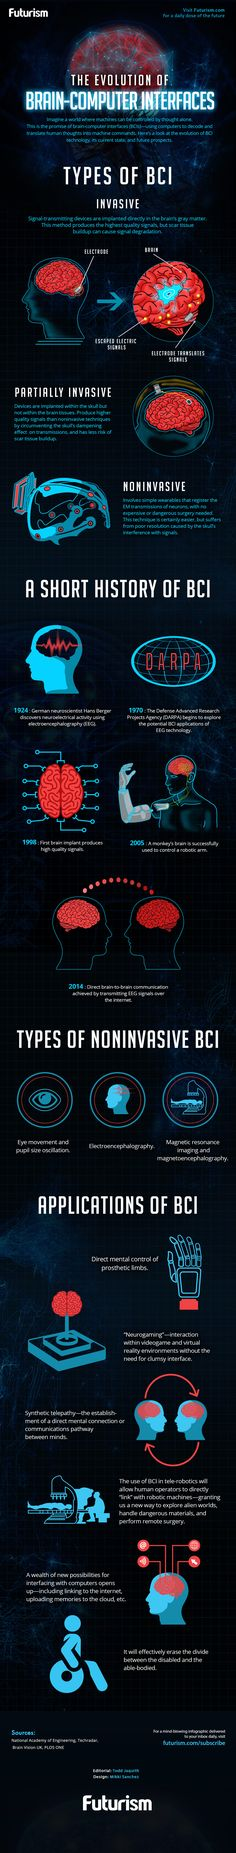 Forget touchscreens and keyboards: the future is all about brain-computer interfaces.    https://futurism.com/images/the-evolution-of-brain-computer-interfaces-infographic/?utm_campaign=coschedule&utm_source=pinterest&utm_medium=Futurism&utm_content=The%20Evolution%20of%20Brain-Computer%20Interfaces%20%5BINFOGRAPHIC%5D